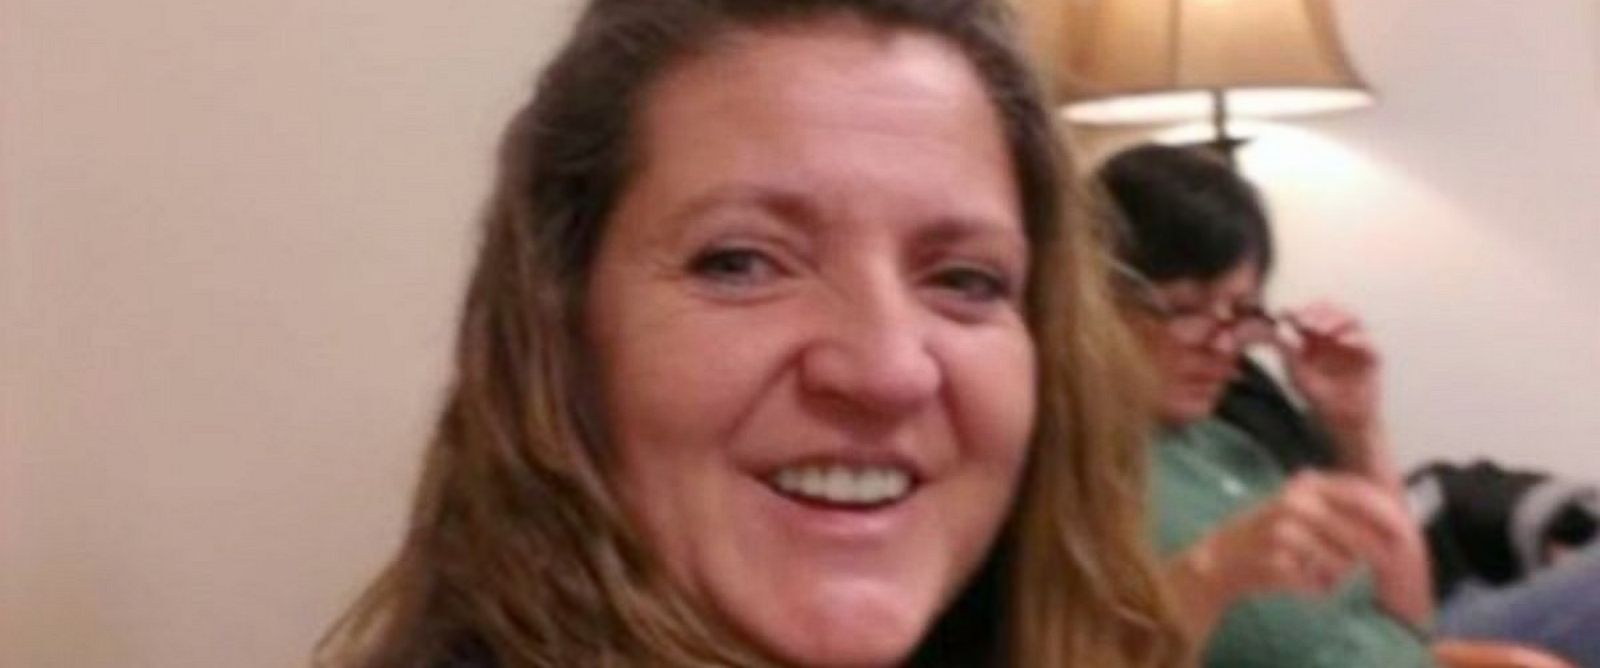 PHOTO: Dalene Bowden is pictured here.